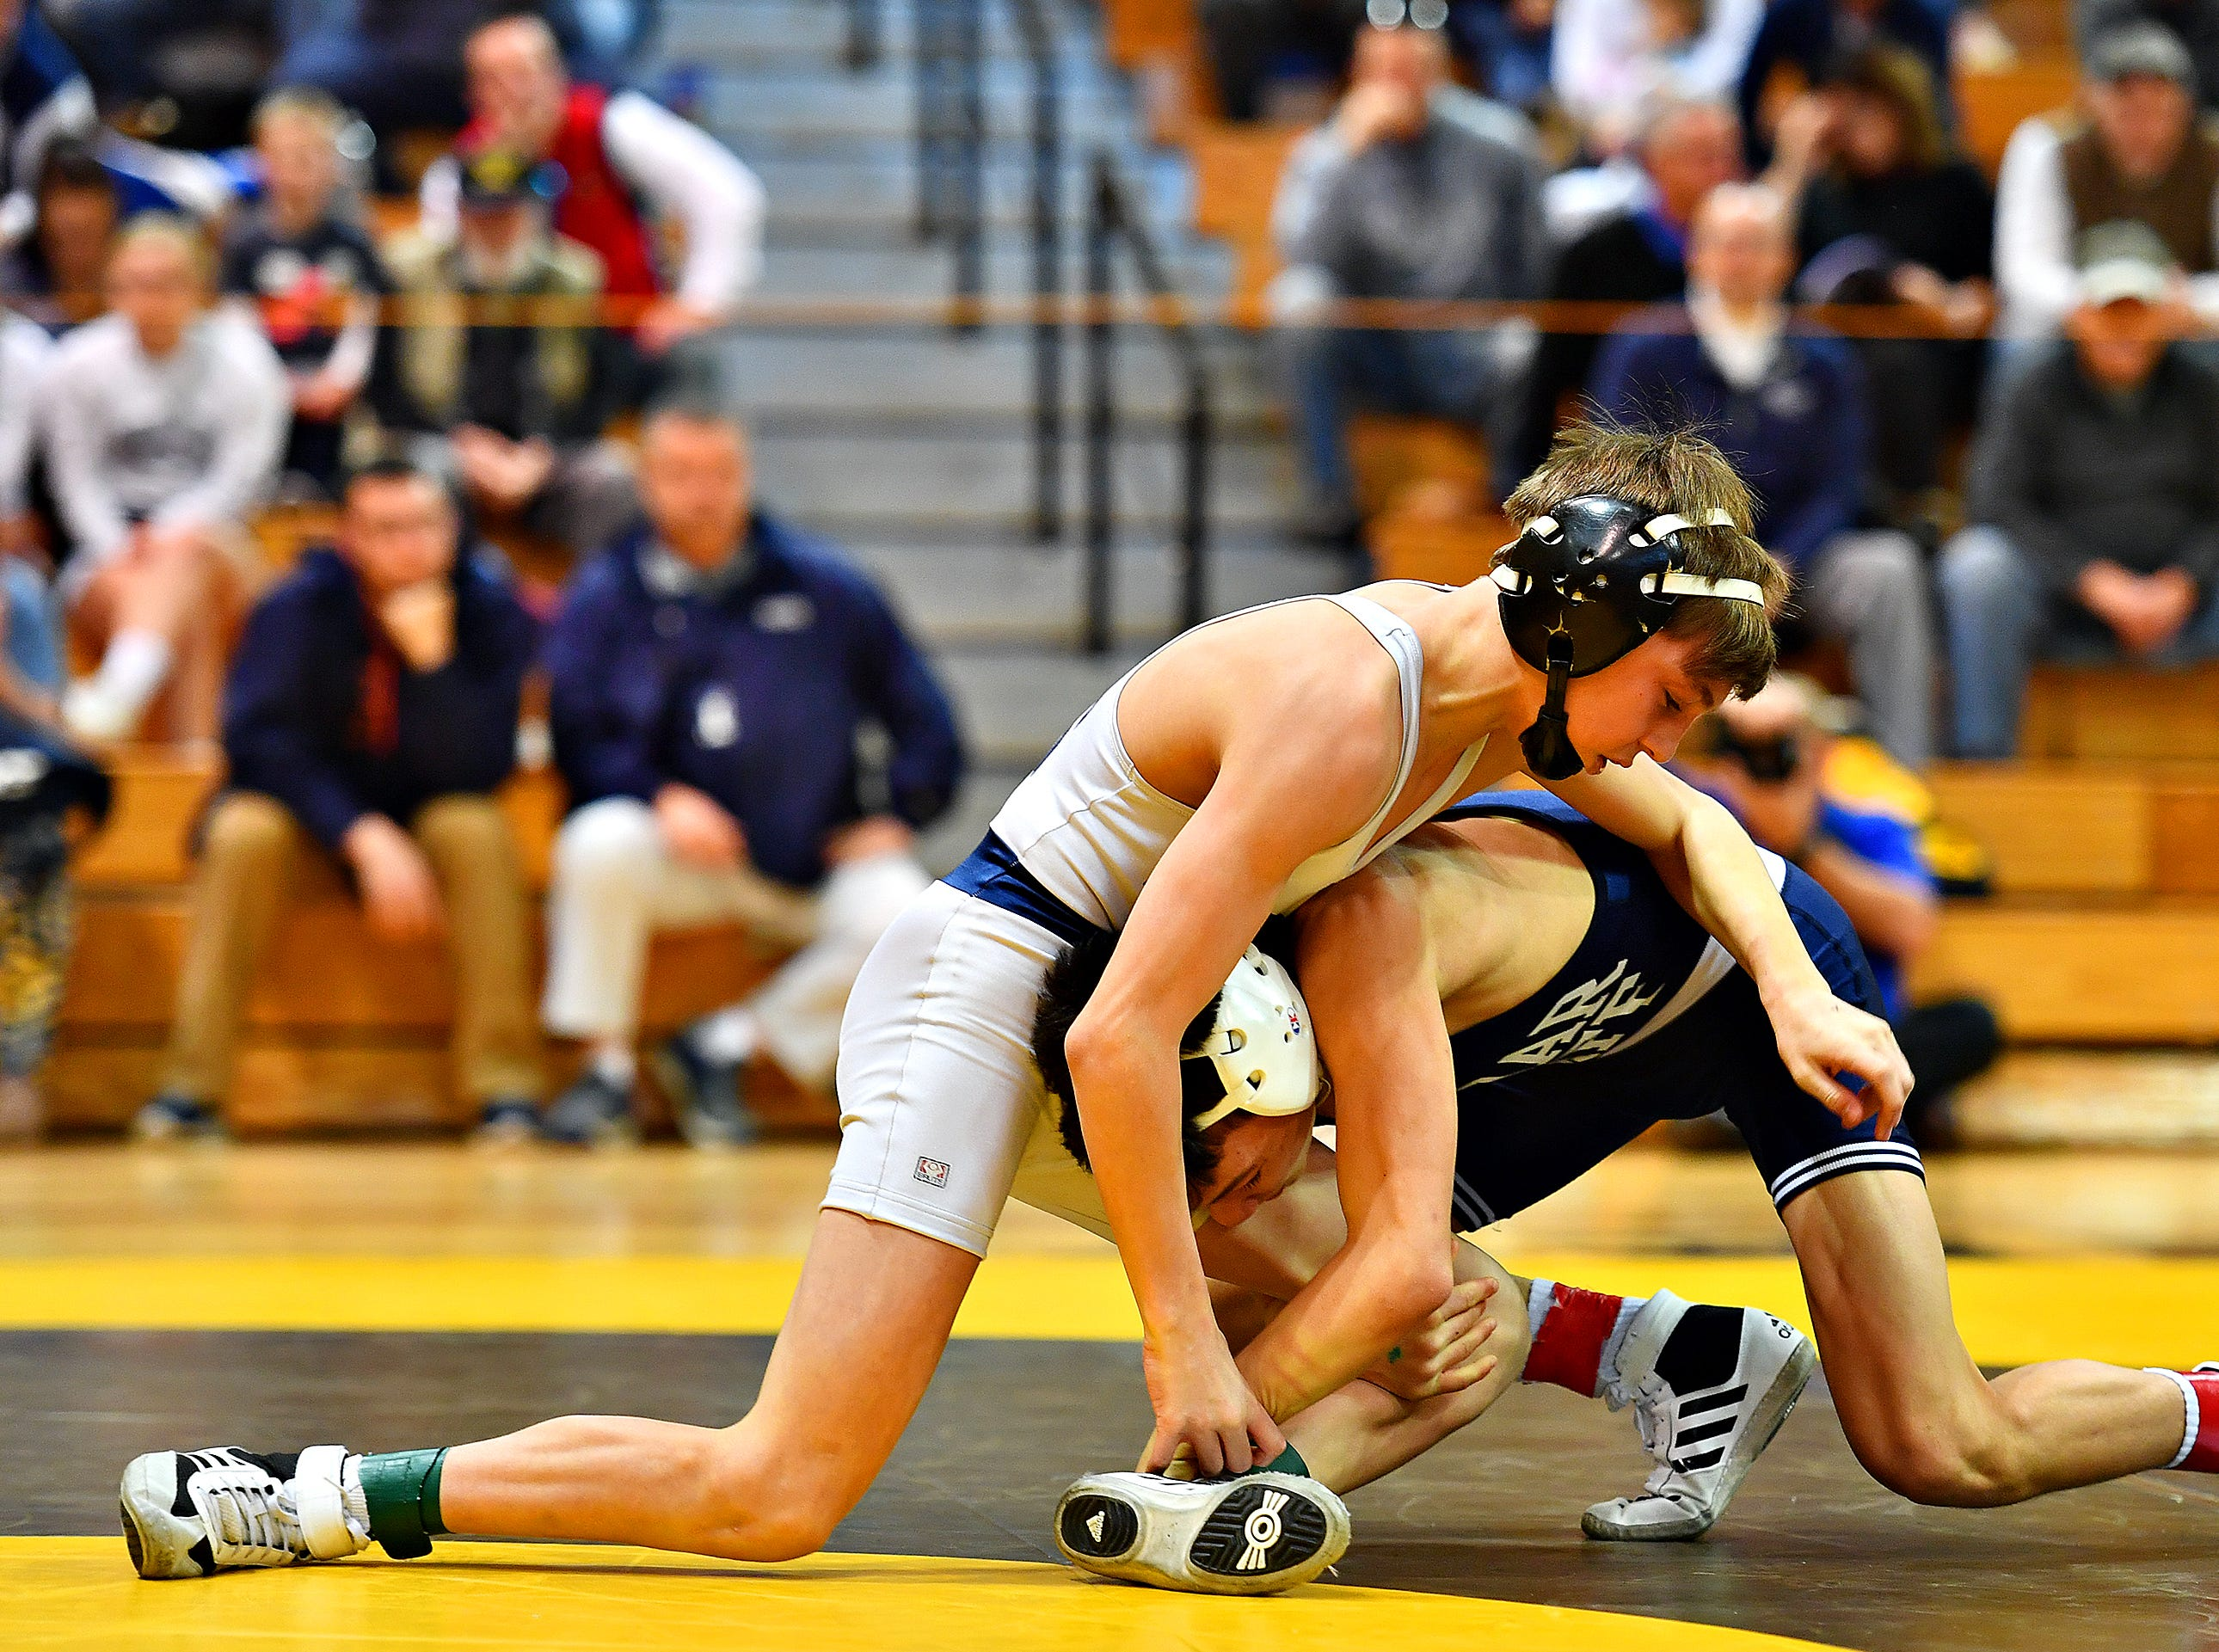 Dallastown's Caden Dobbins, left, wrestles Cedar Cliff's Aiden Lewis in the 106 pound weight class during District 3, Class 3A wrestling championship action at Milton Hershey High School in Hershey, Saturday, Feb. 2, 2019. Dawn J. Sagert photo